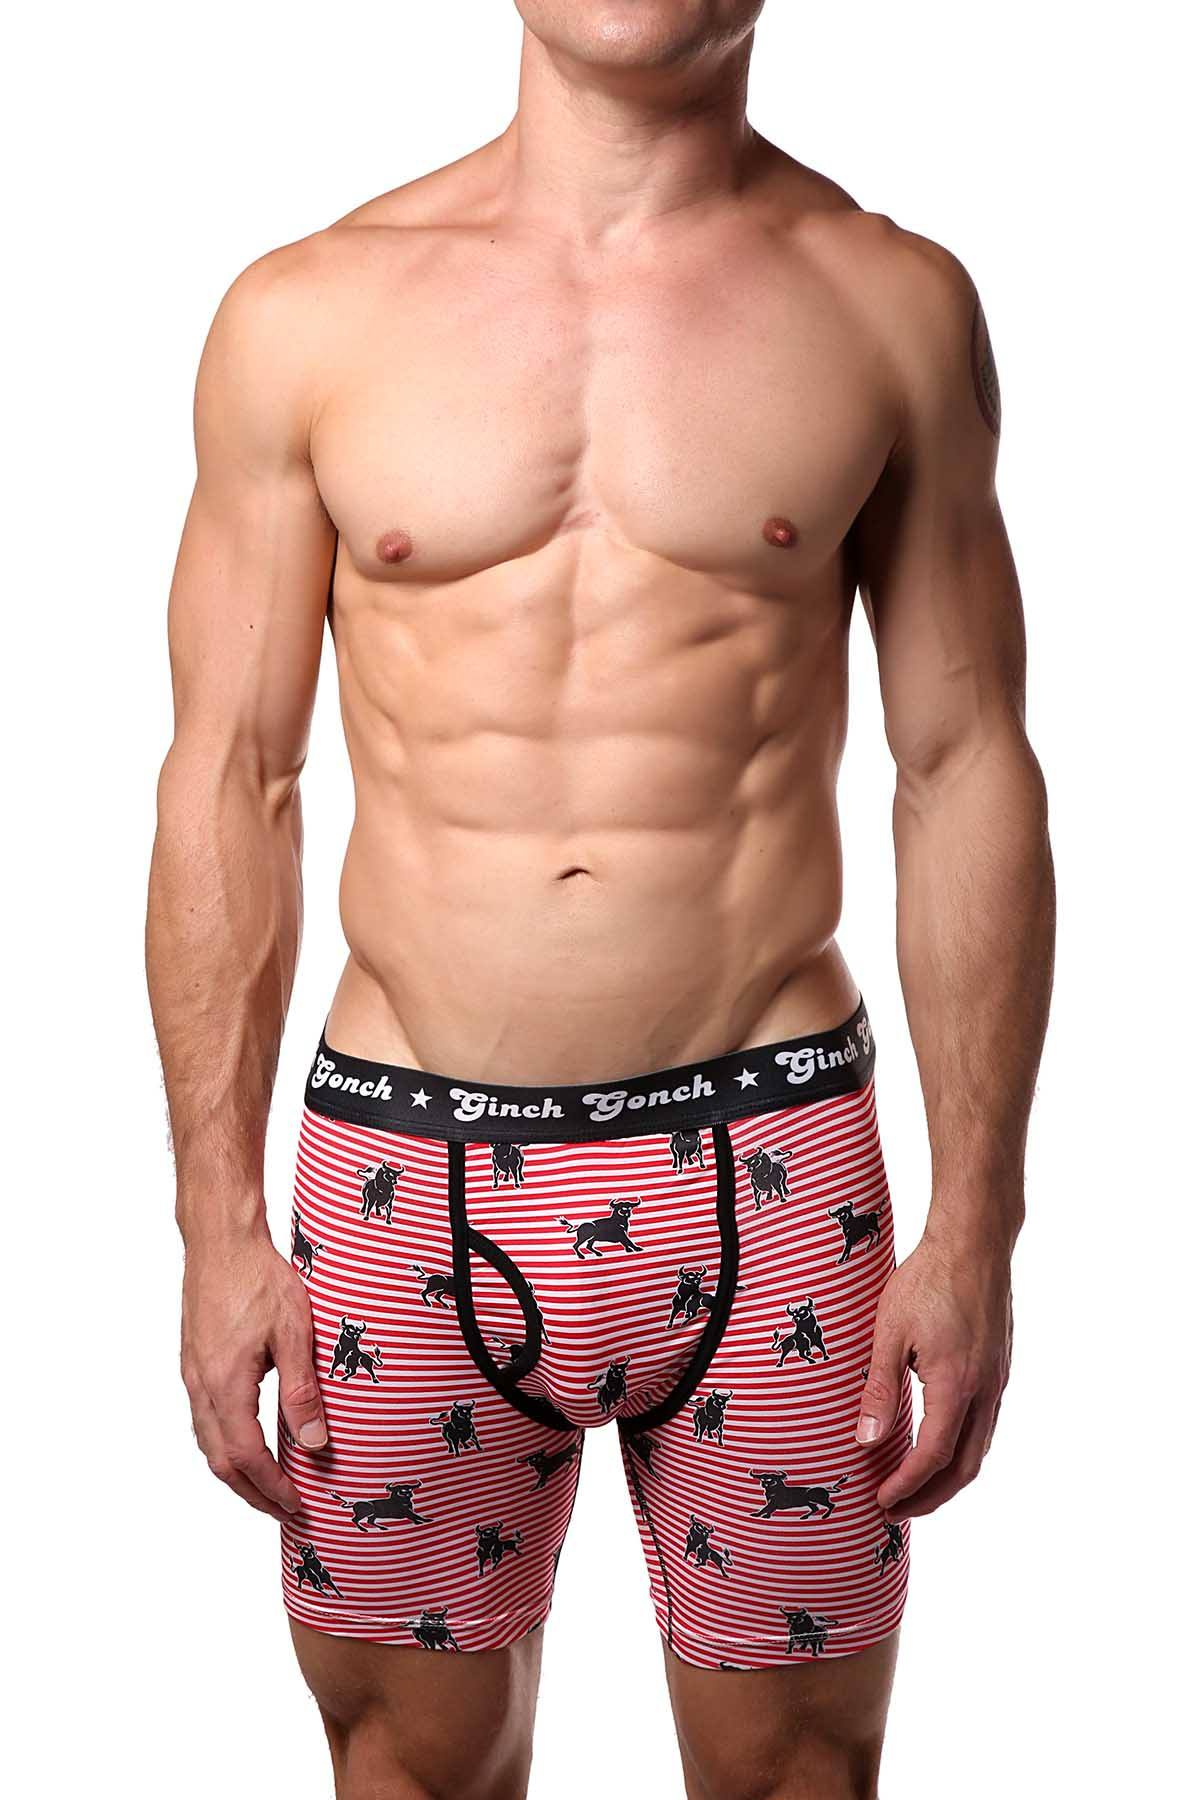 Ginch Gonch Wild-Bulls Boxer Brief